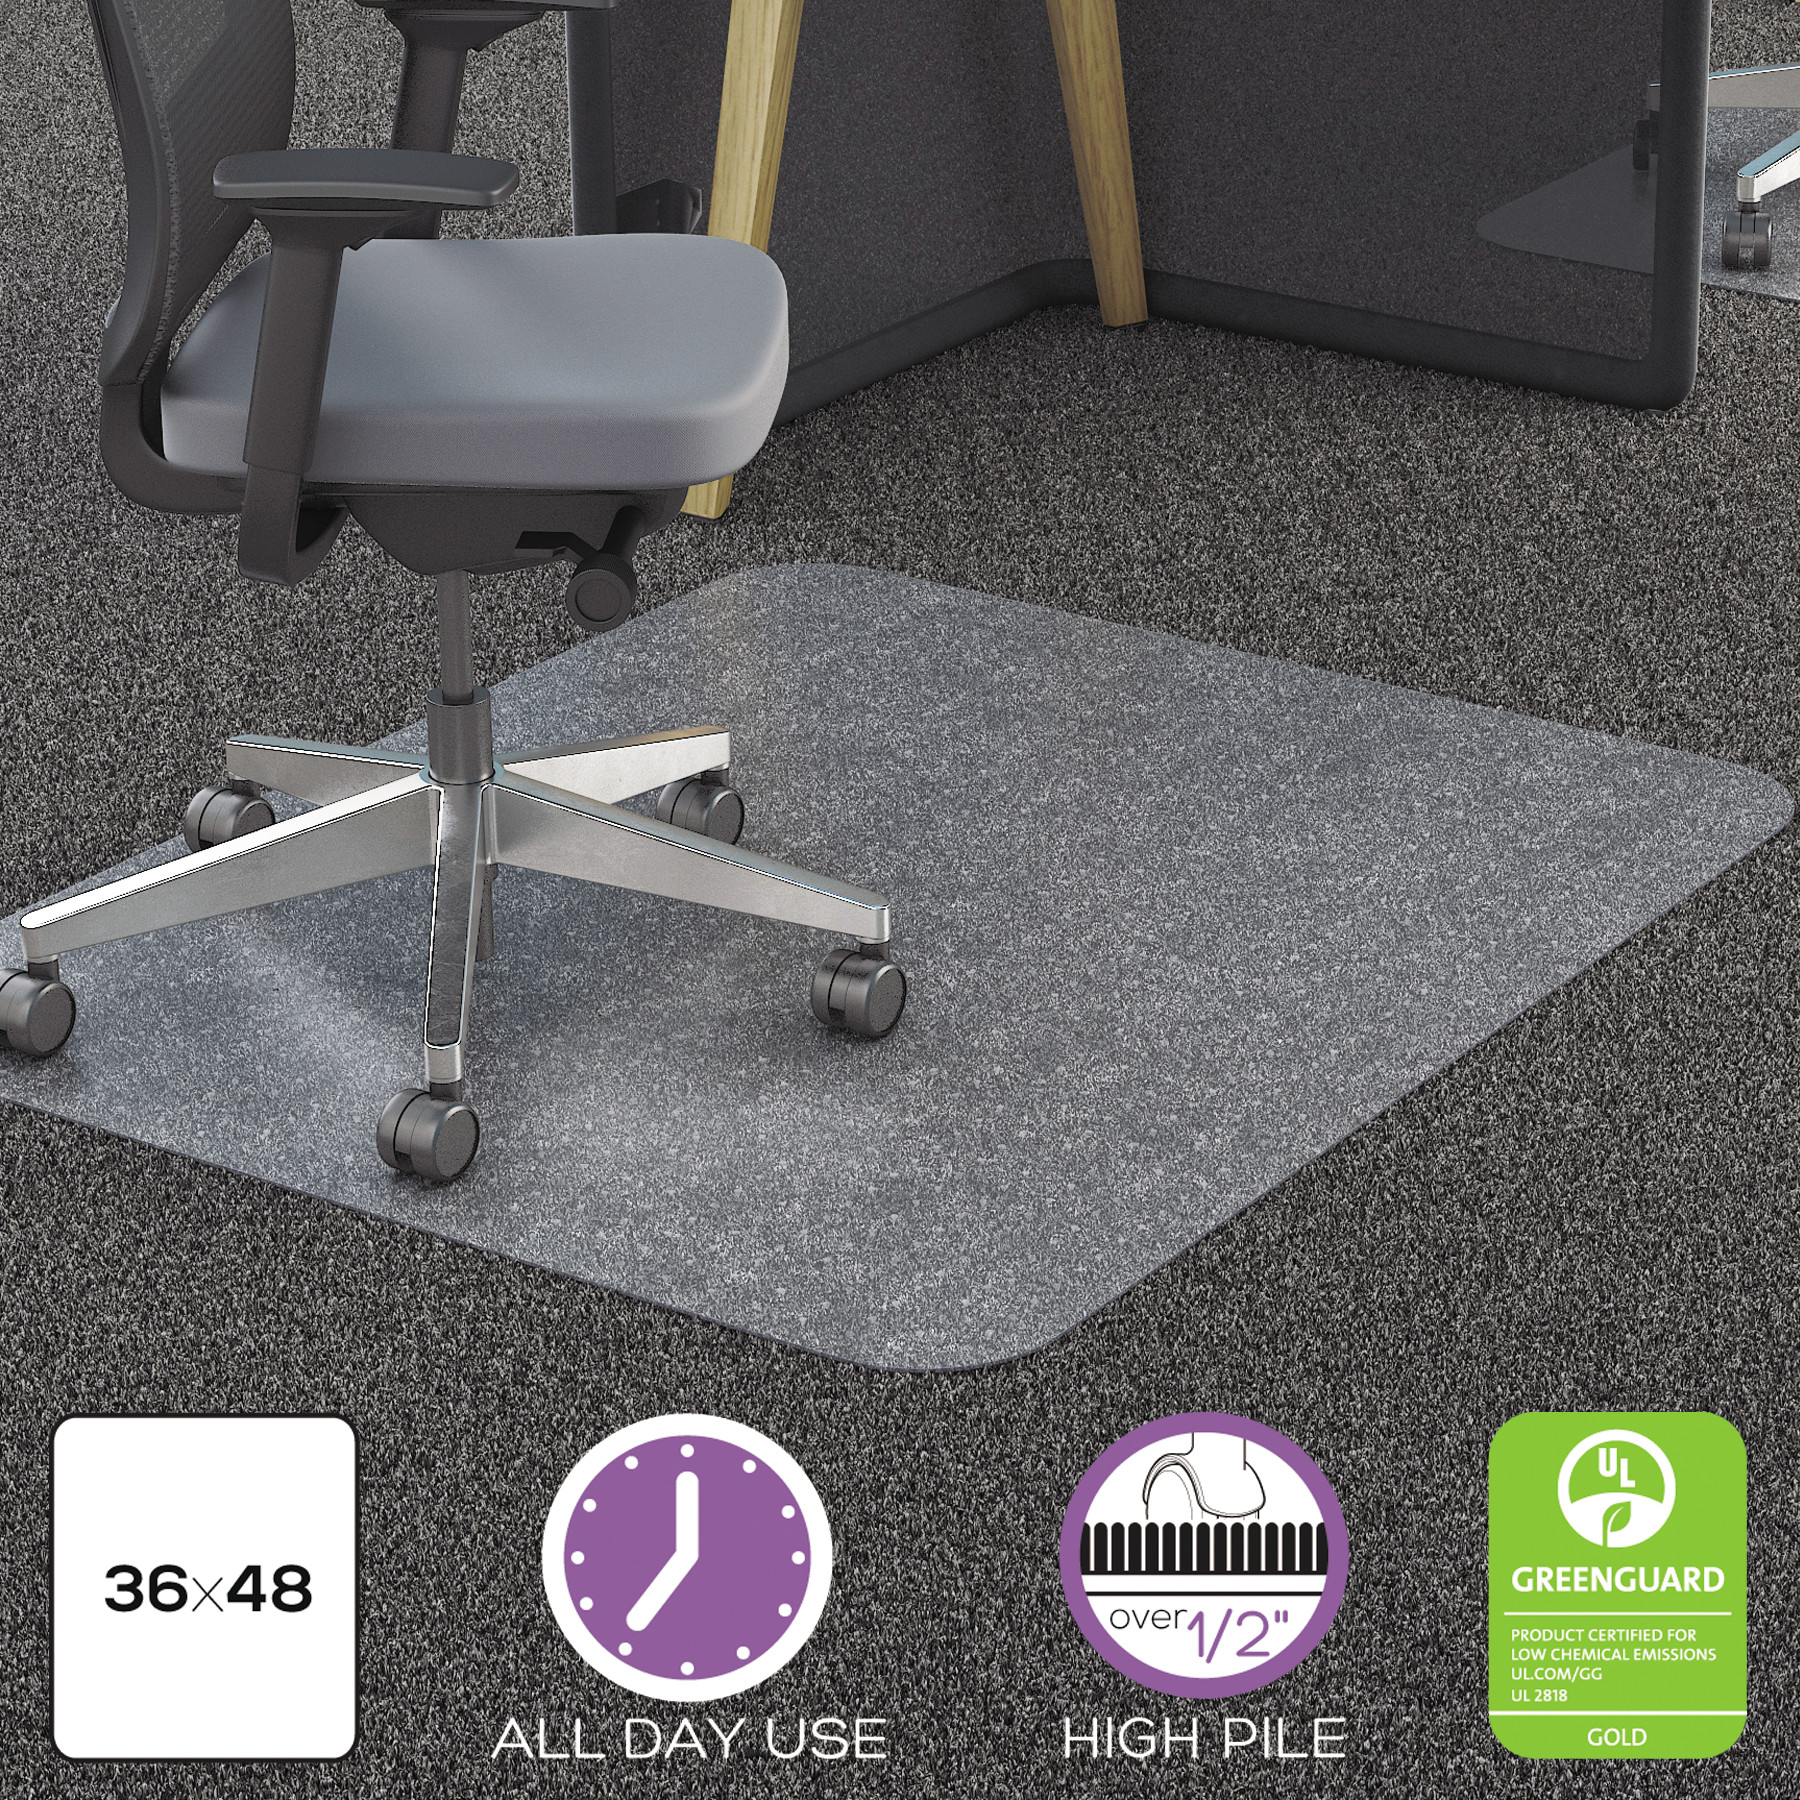 deflecto clear polycarbonate all day use chair mat for all pile